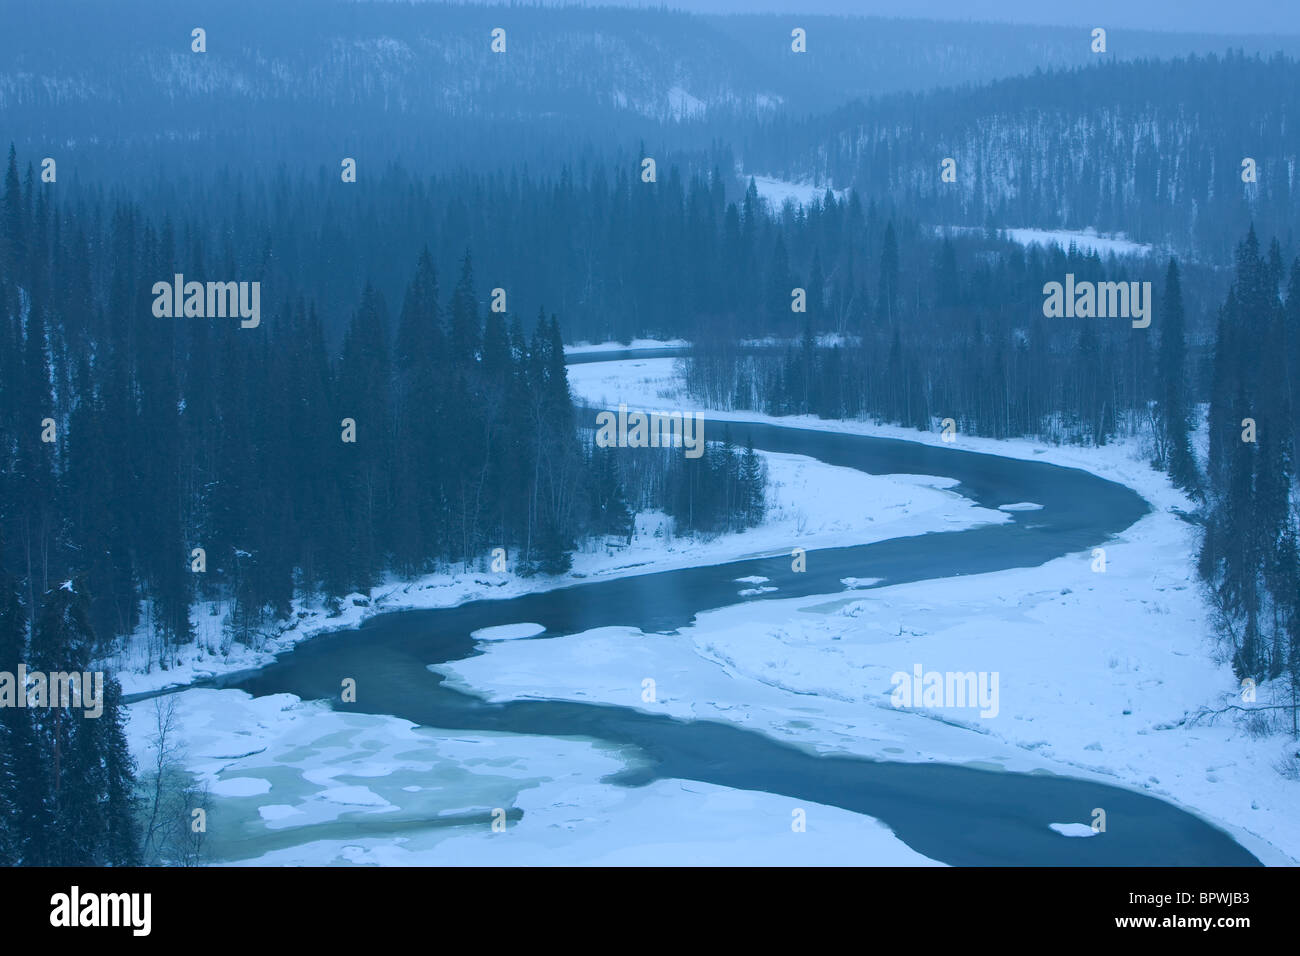 The Kitka River in a snowstorm in Oulanka National Park, Finland. Stock Photo